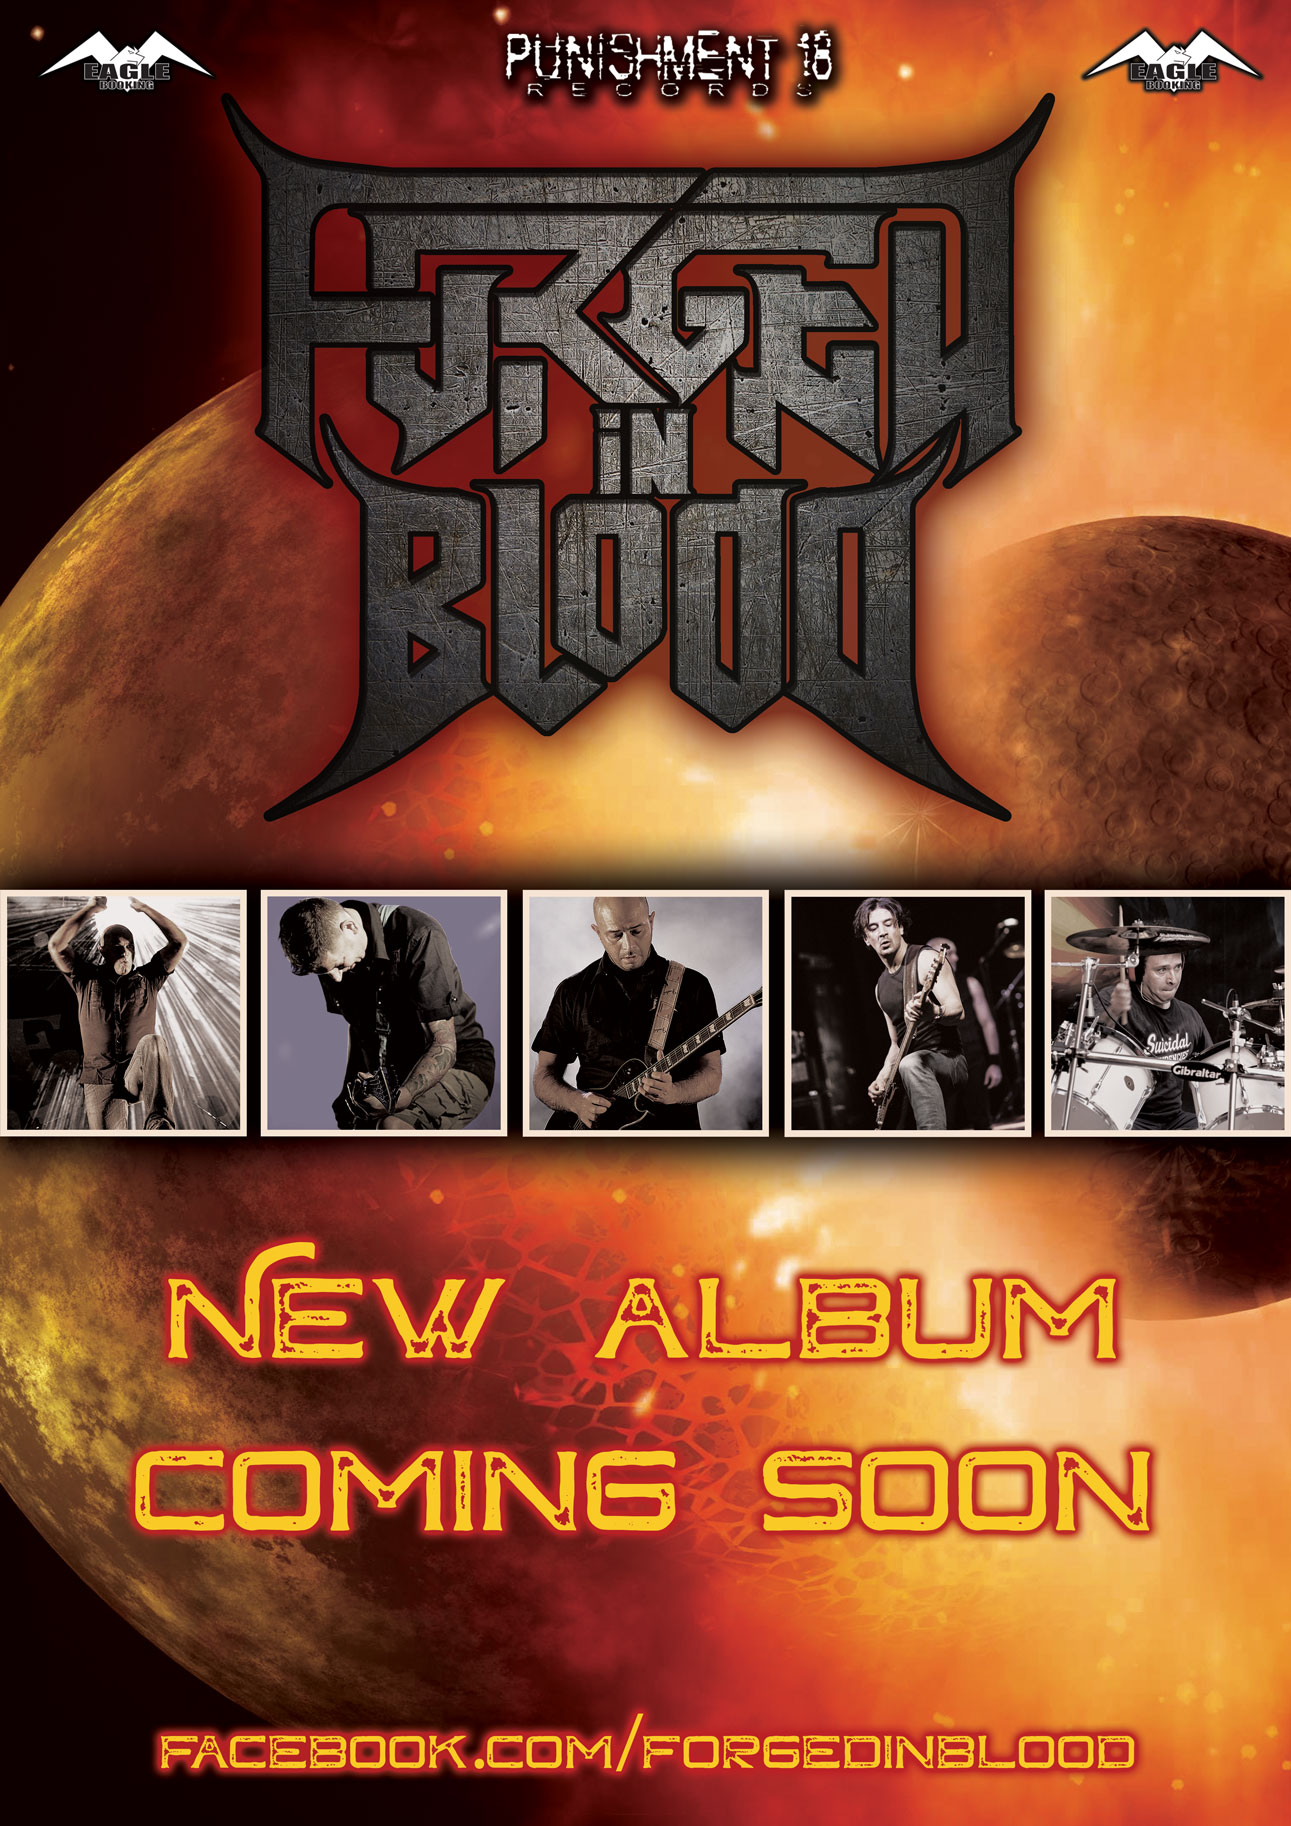 Forged In Blood - Punishment 18 Records - Promo